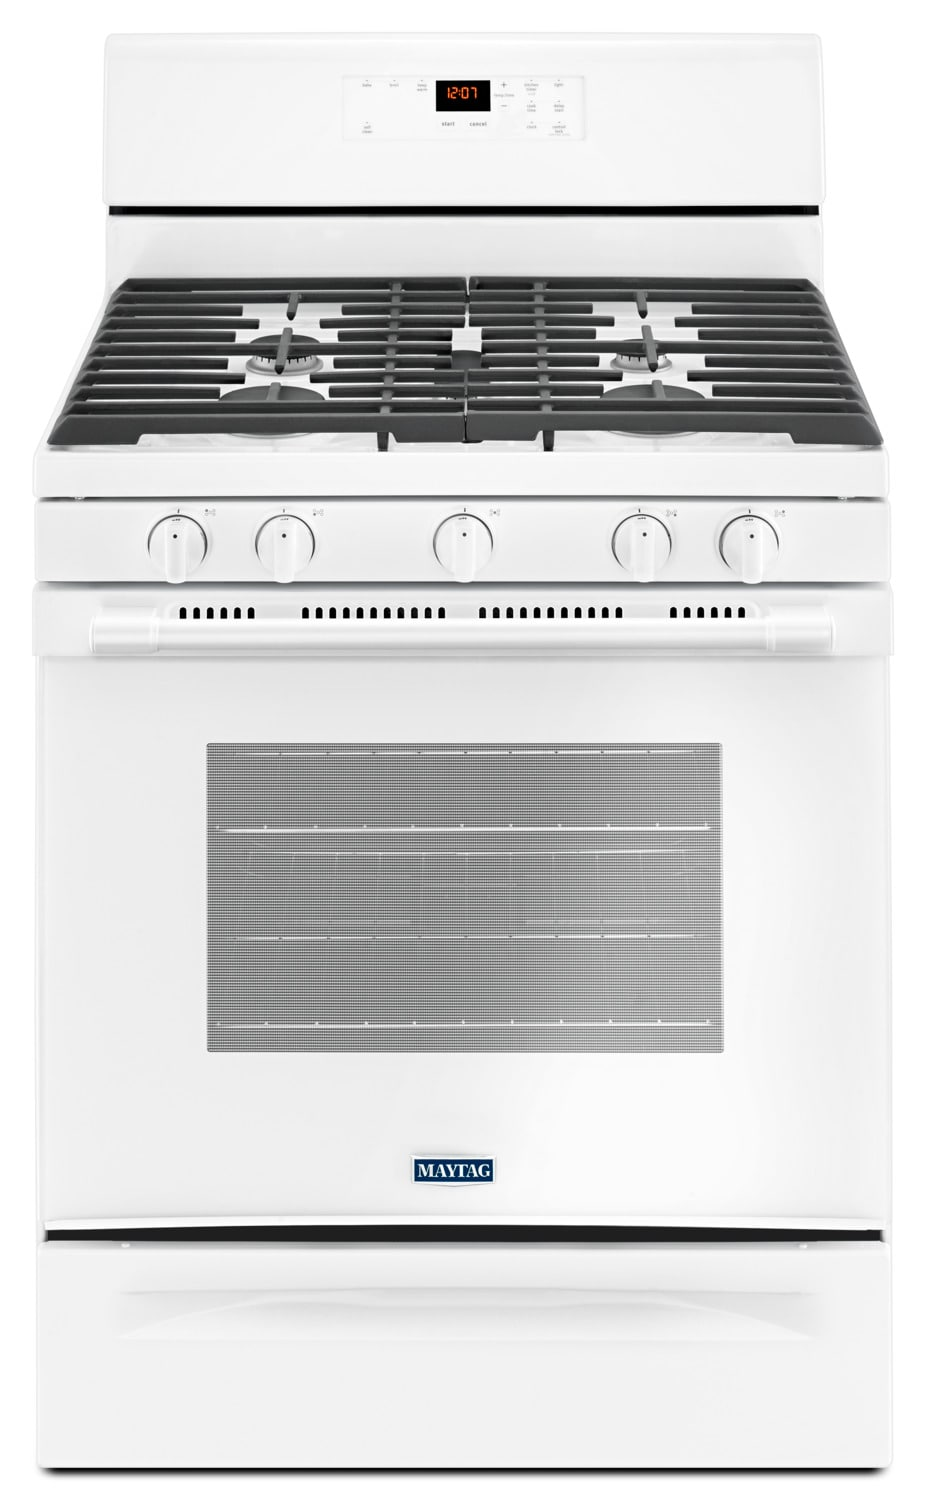 Maytag White Freestanding Gas Range (5.0 Cu. Ft.) - MGR6600FW